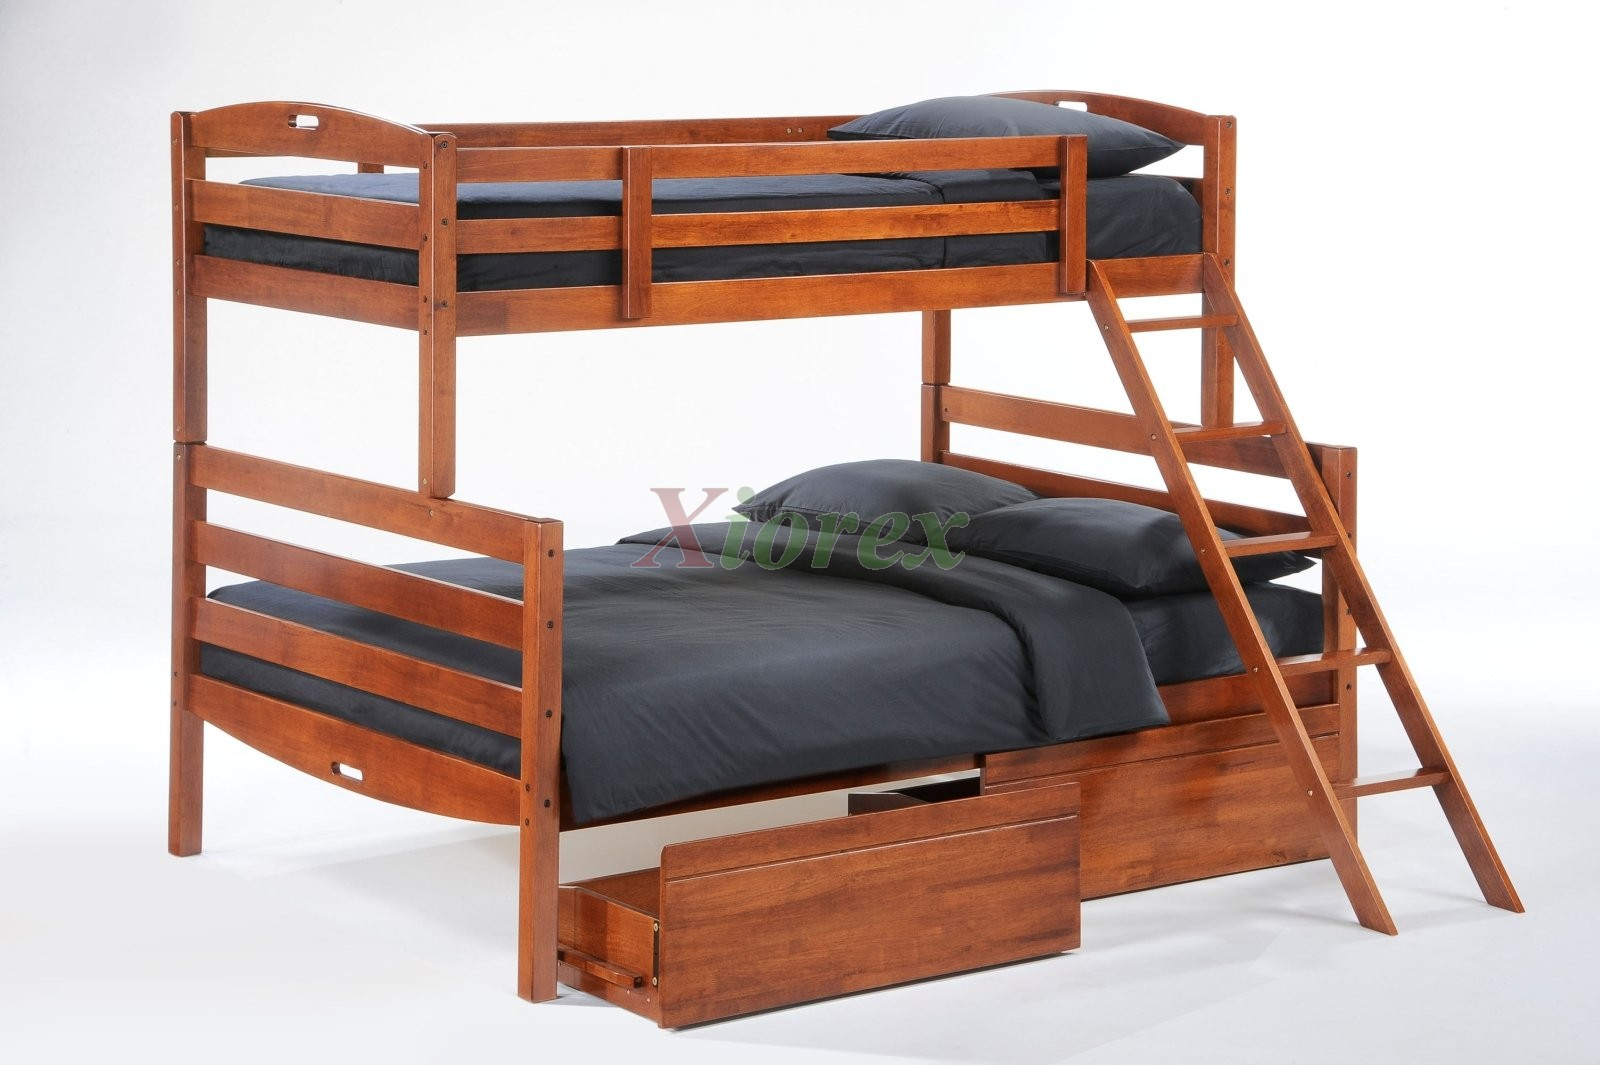 Genuine Twin Full Cherry Bunk Bed W Drawers Day Sesame Bunk Bed Sesame Bunk Bed Set Twin Twin Bunk Bed Twin Full Bunk Bed Night Drawers Plans Bed Drawers Twin houzz-03 Bed With Drawers